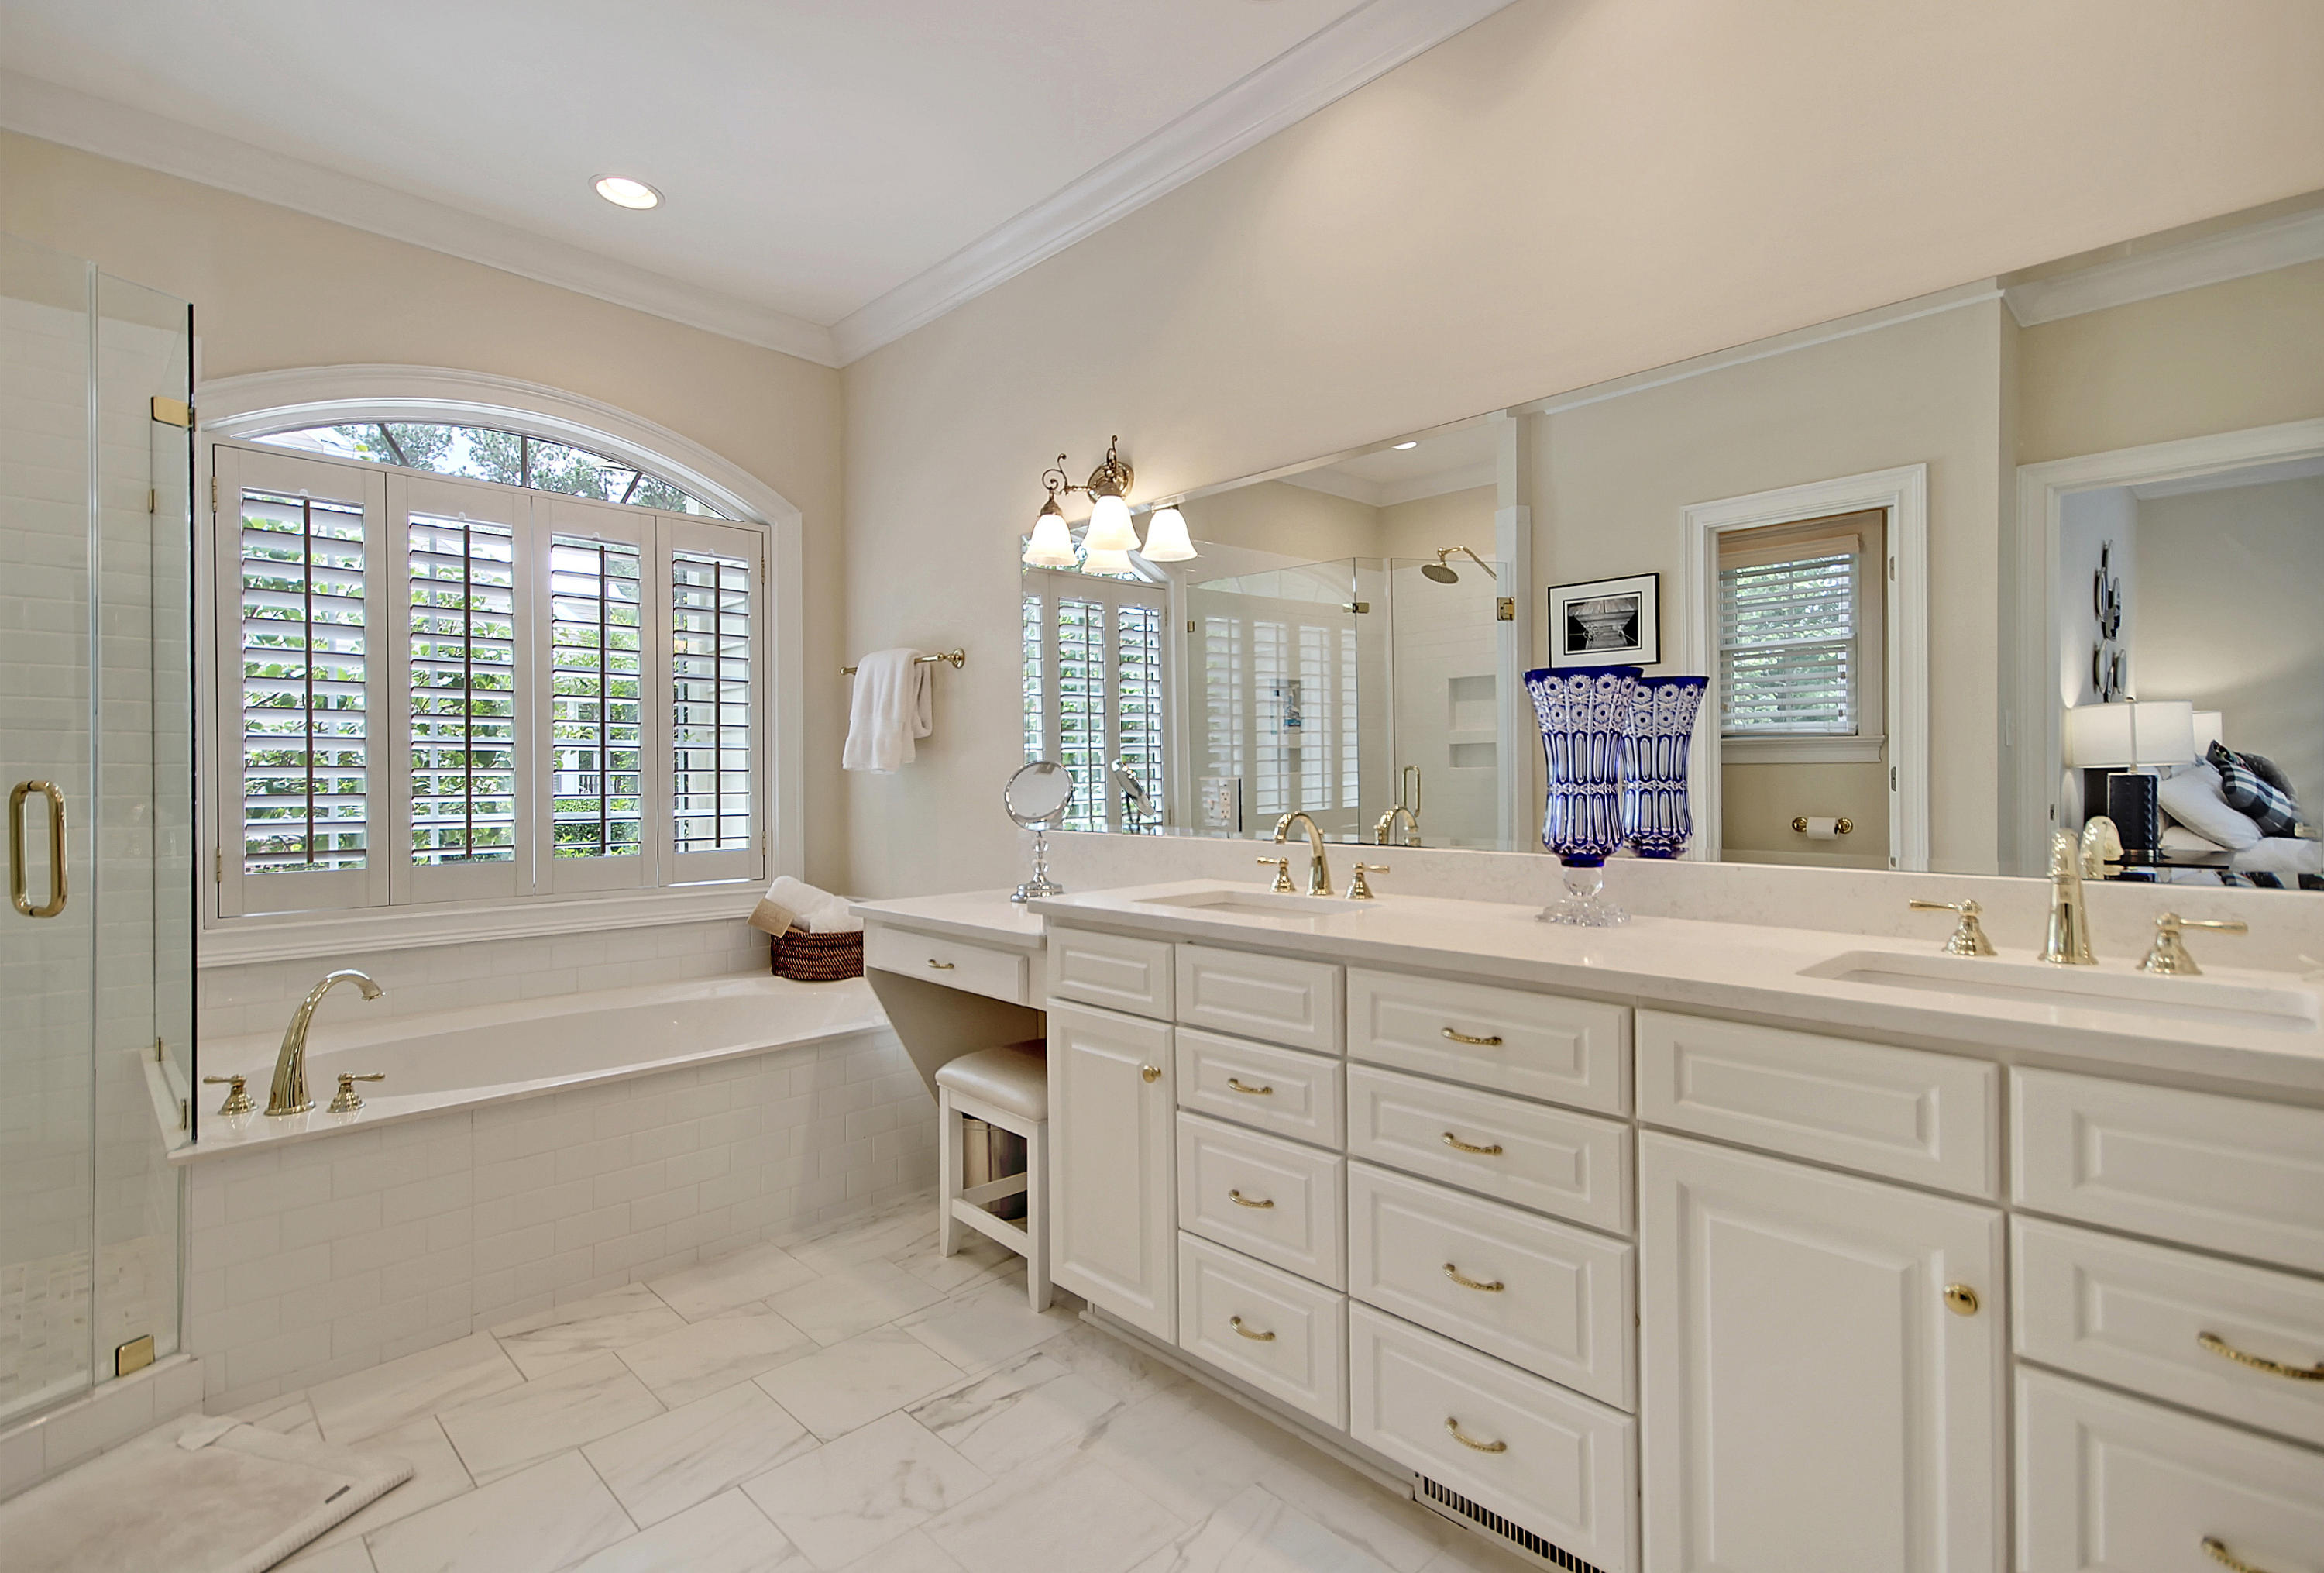 Dunes West Homes For Sale - 1829 Shell Ring, Mount Pleasant, SC - 13